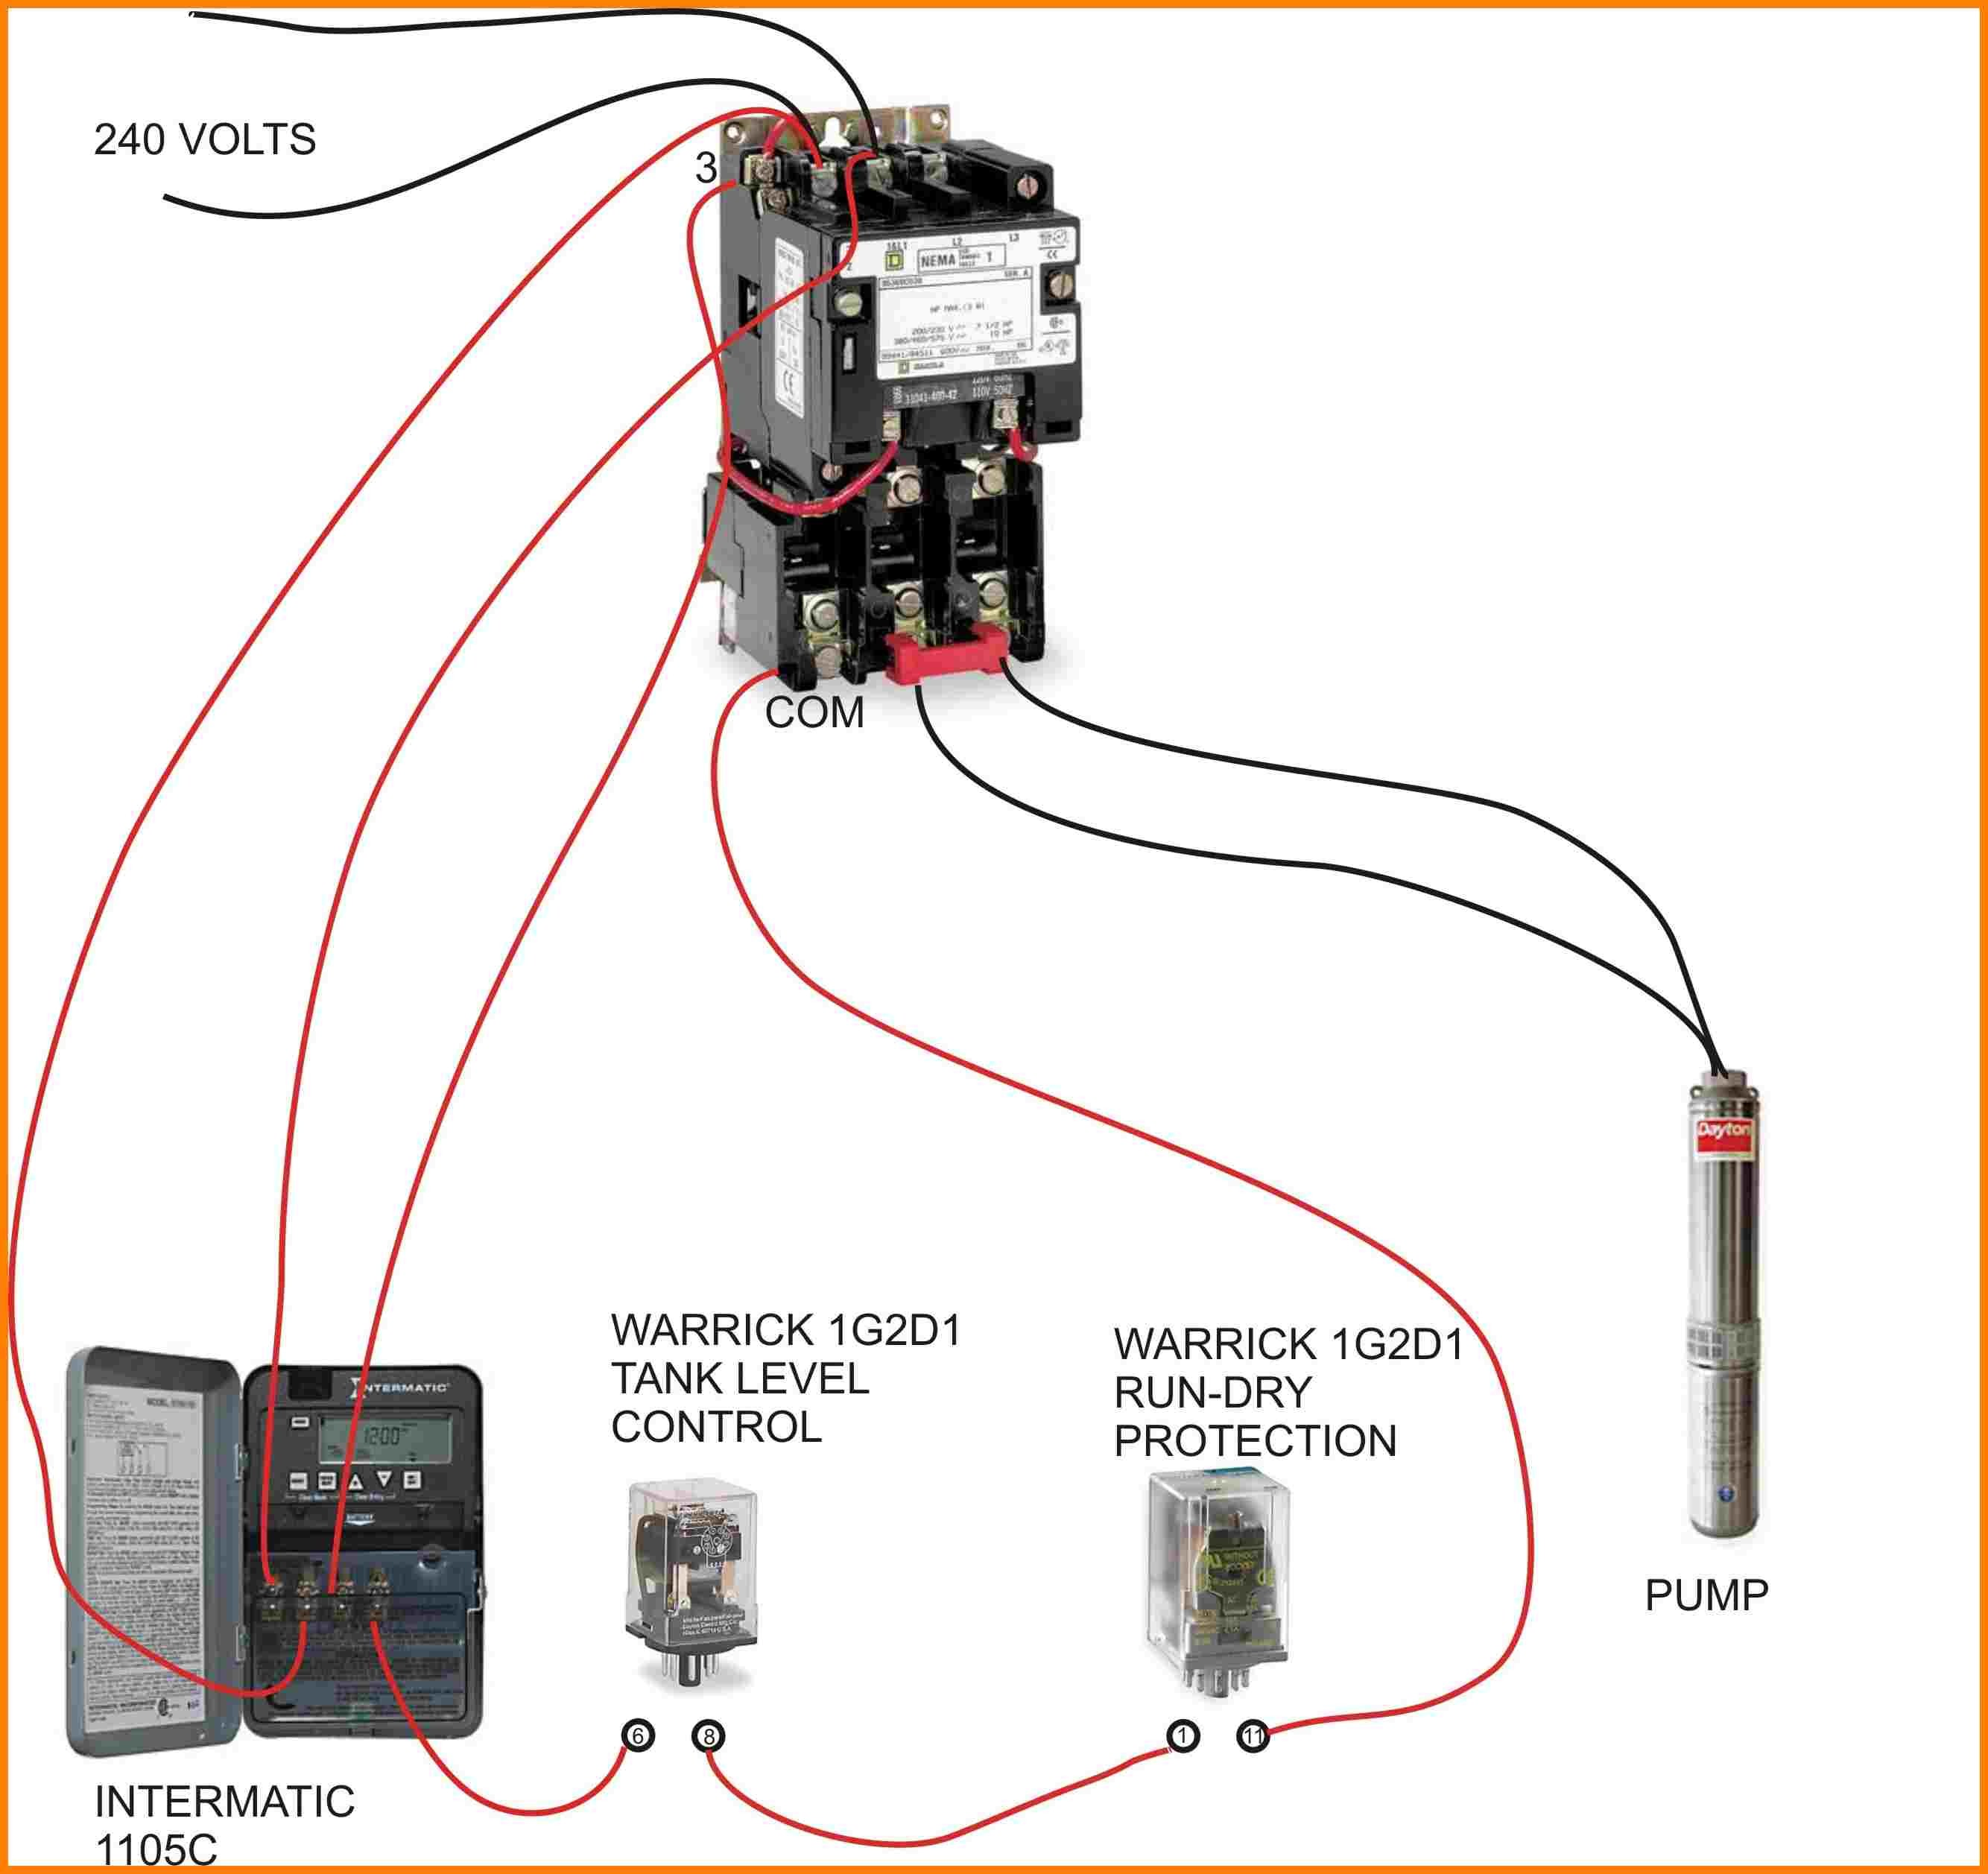 Contactor Relay Wiring Diagram | Wiring Schematic Diagram ... on